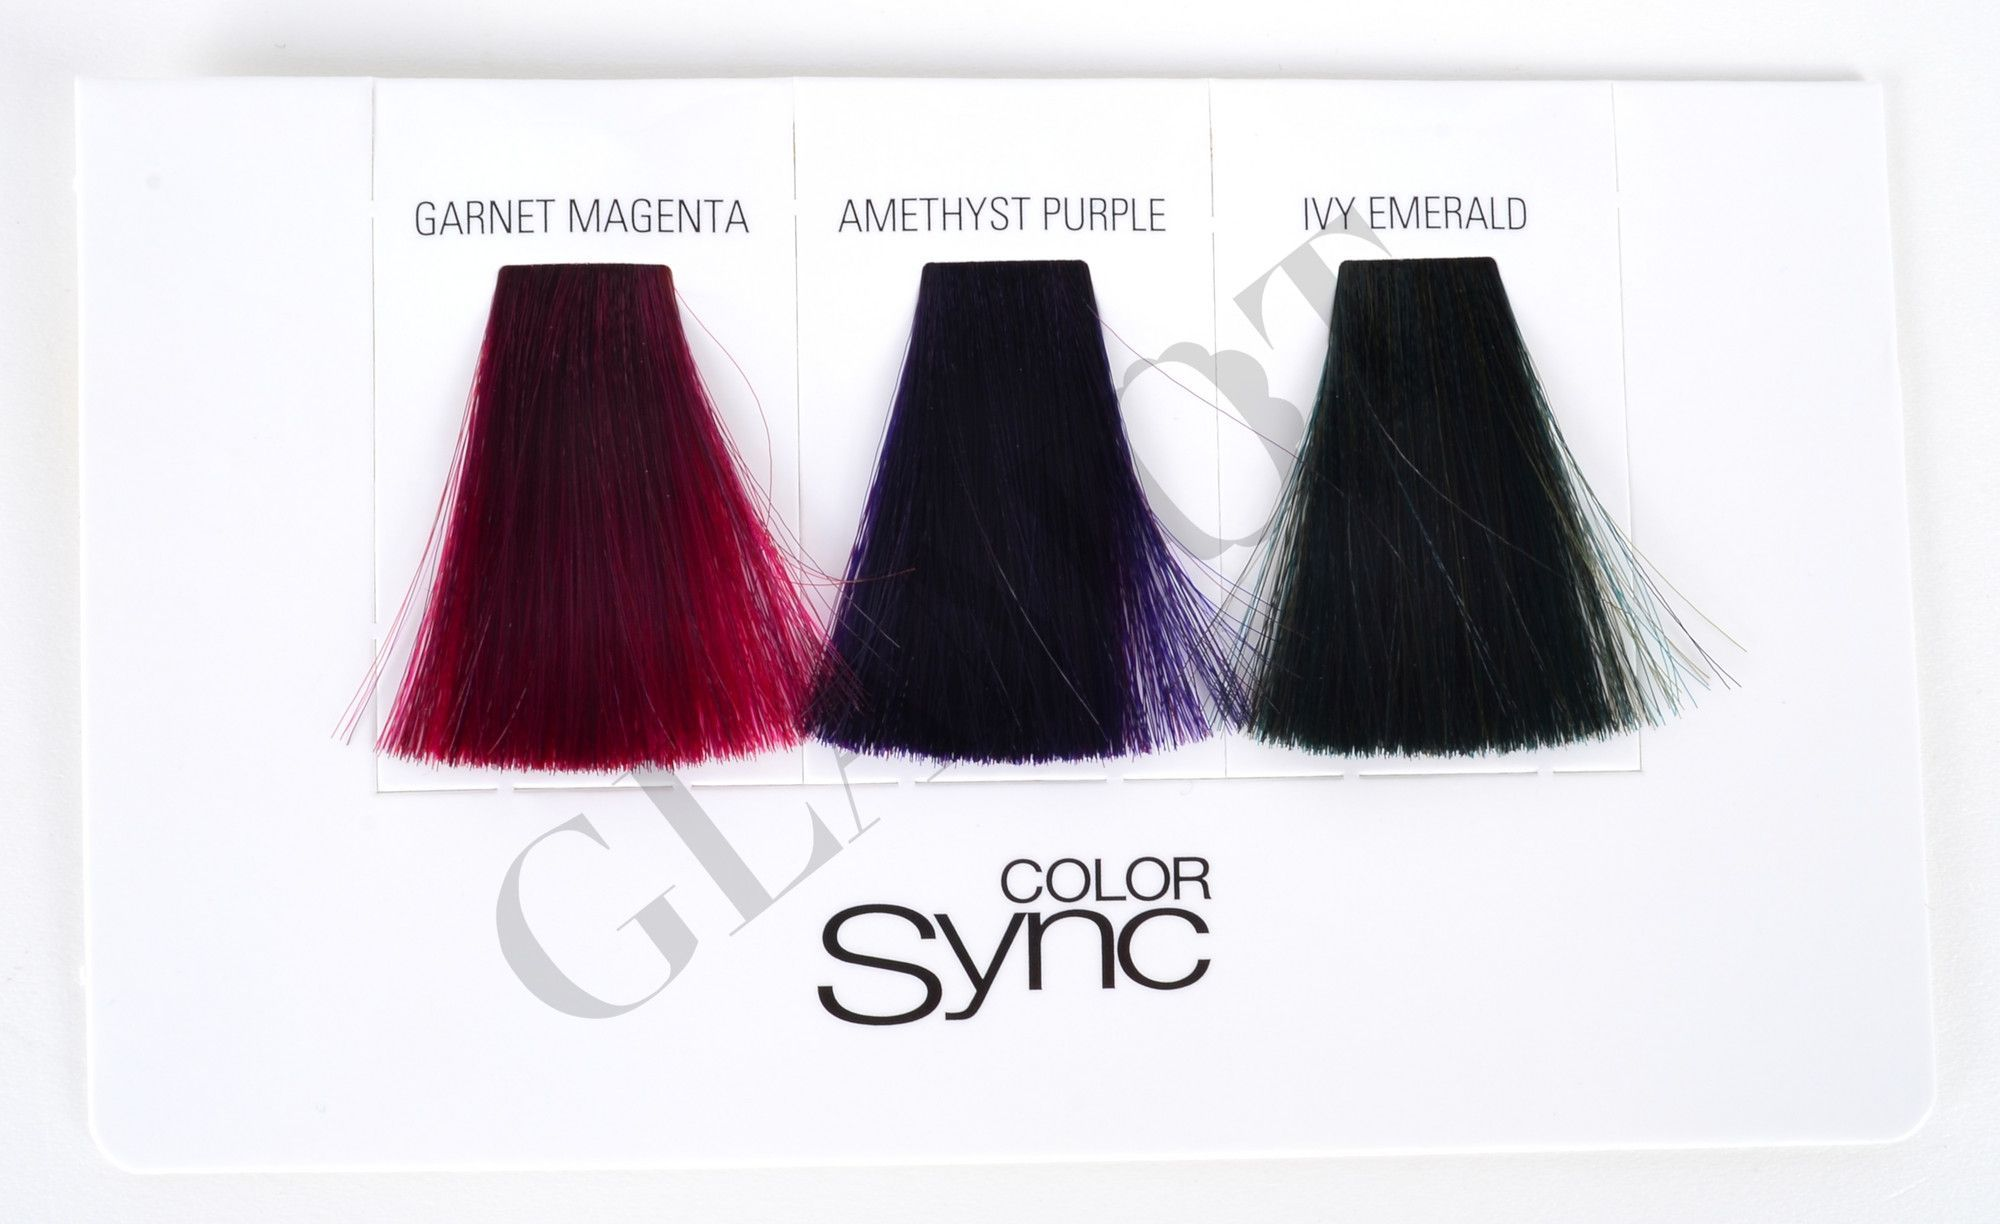 Bright Matrix Shade Card Matrix Hair Dye Color Chart Bright Card Chart Color Dye Hair In 2020 Hair Dye Color Chart Hair Color Formulas Hair Dye Colors